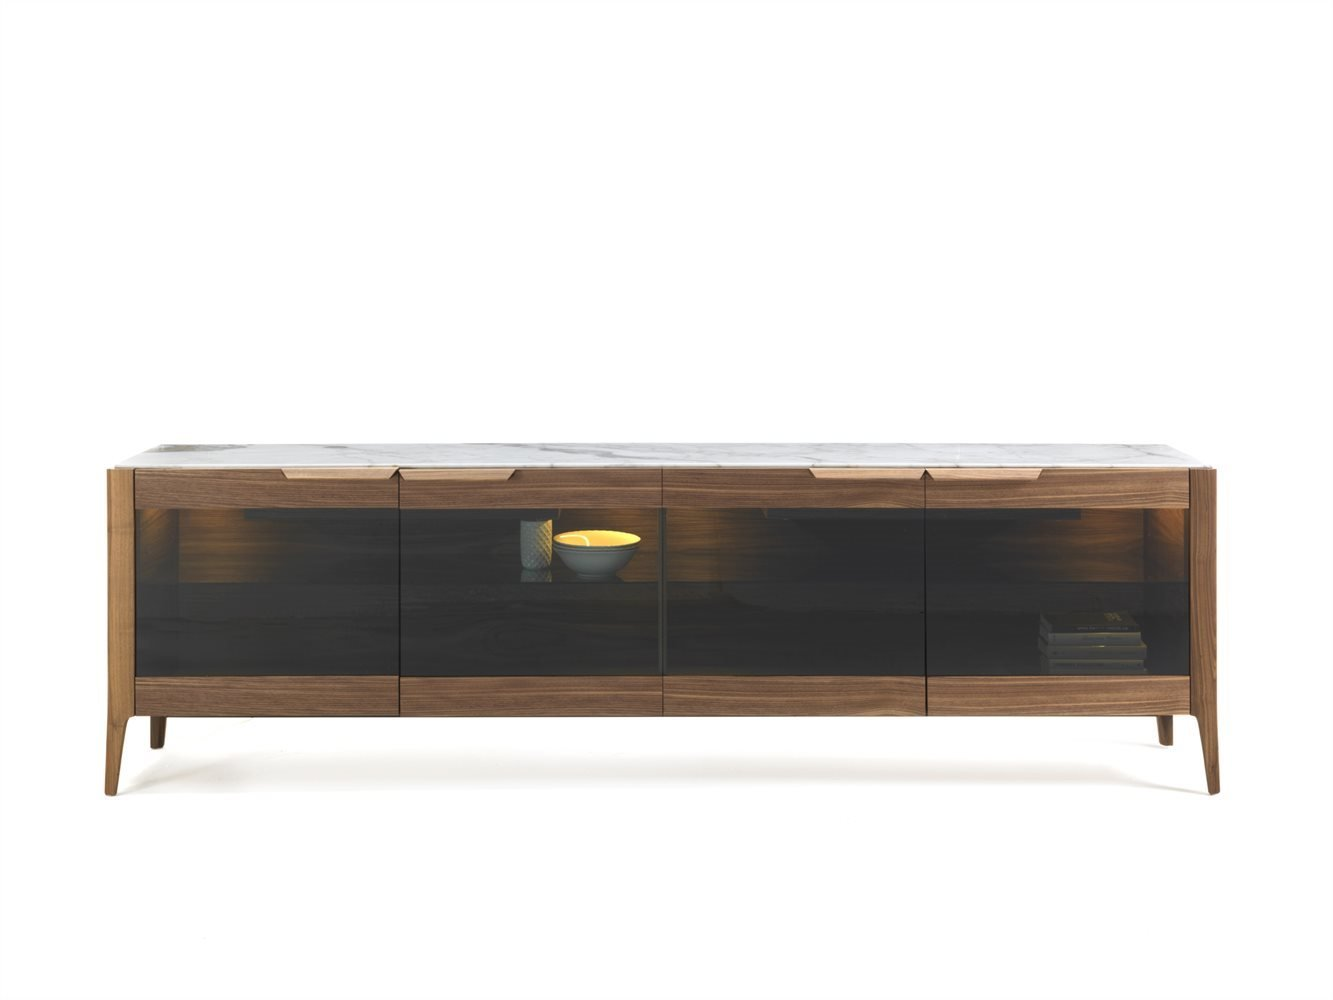 Atlante 5 Sideboard from Porada, designed by C. Ballabio